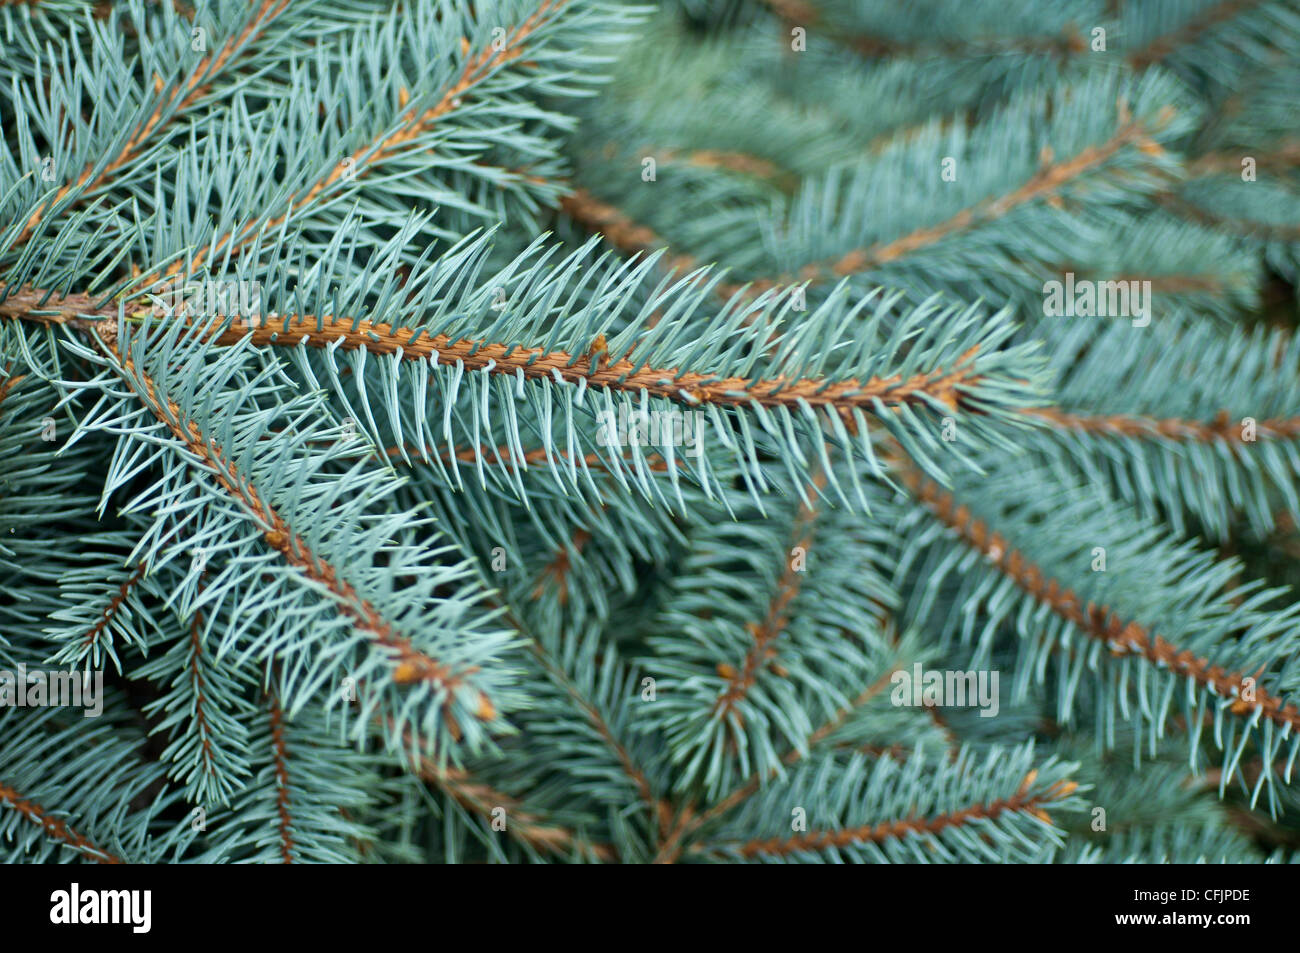 Blue conifers of Coloado Blue Spruce, Picea Pungens v Procumbens  Pinaceae - Stock Image